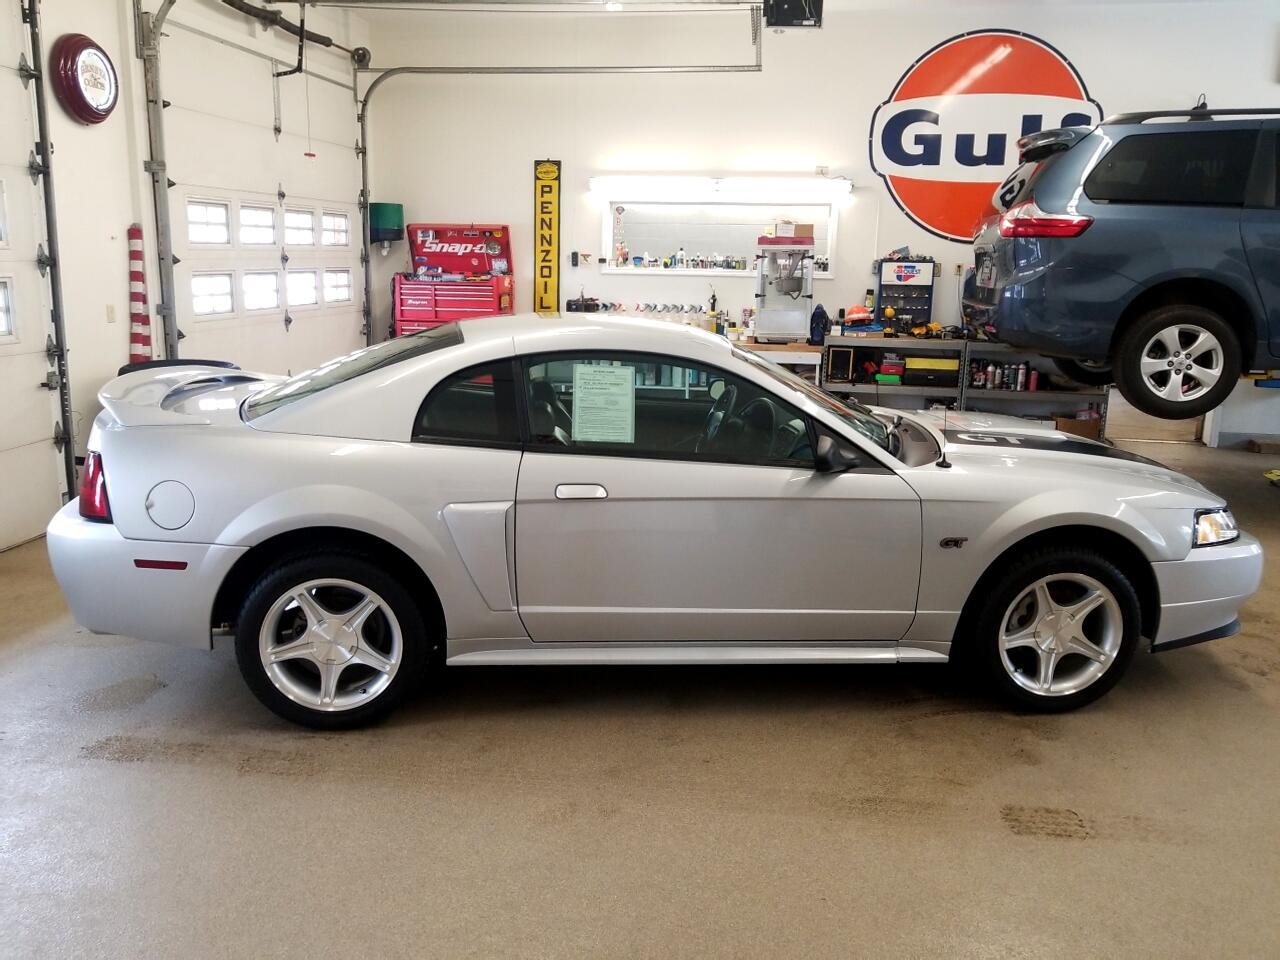 2000 Ford Mustang 2dr Coupe GT